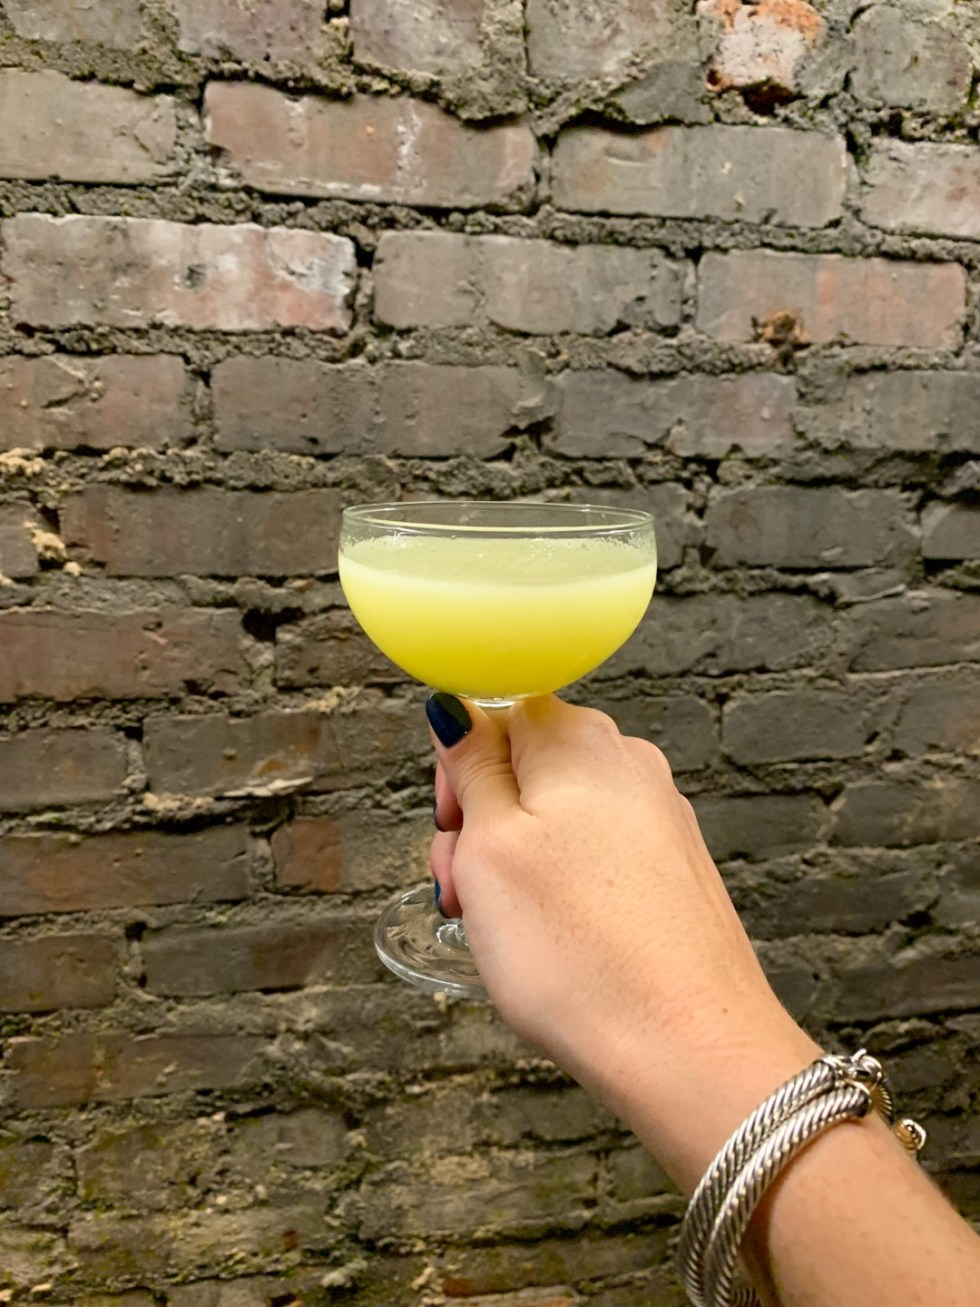 23 Awesome Things To Do in Durham - I'm Fixin' To - @imfixintoblog | Things to do in Durham by popular NC travel blog, I'm Fixin' To: image of a woman holding a yellow cocktail drink.